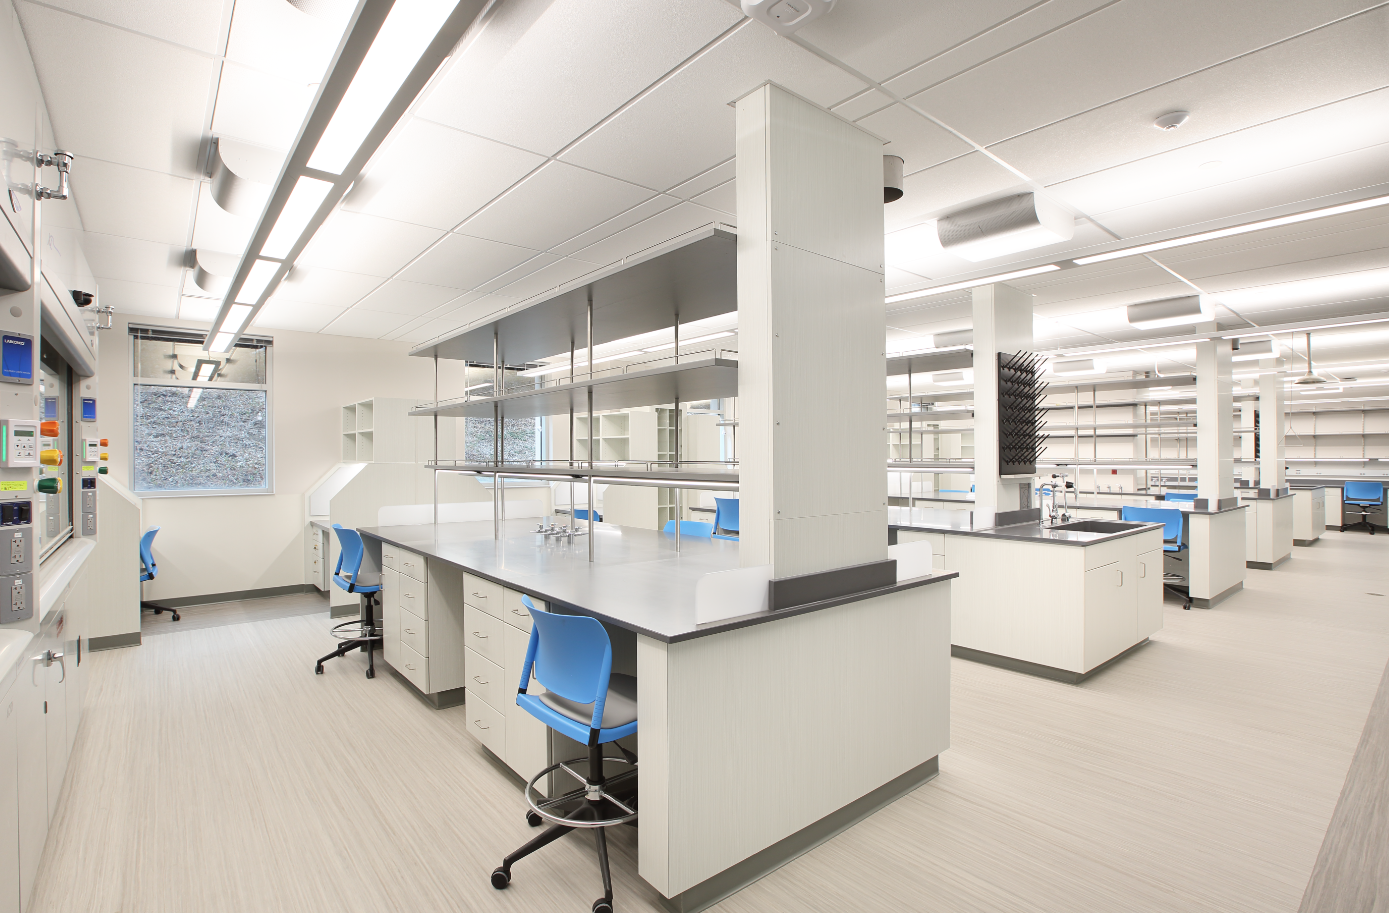 This University Lab design shows 5 rows of clean white lab desks with 2 blue chairs at each station. There are also shelves above the desks that don't have a back on them so you can see through. It gives you more surface space but still keep the room open and bright.